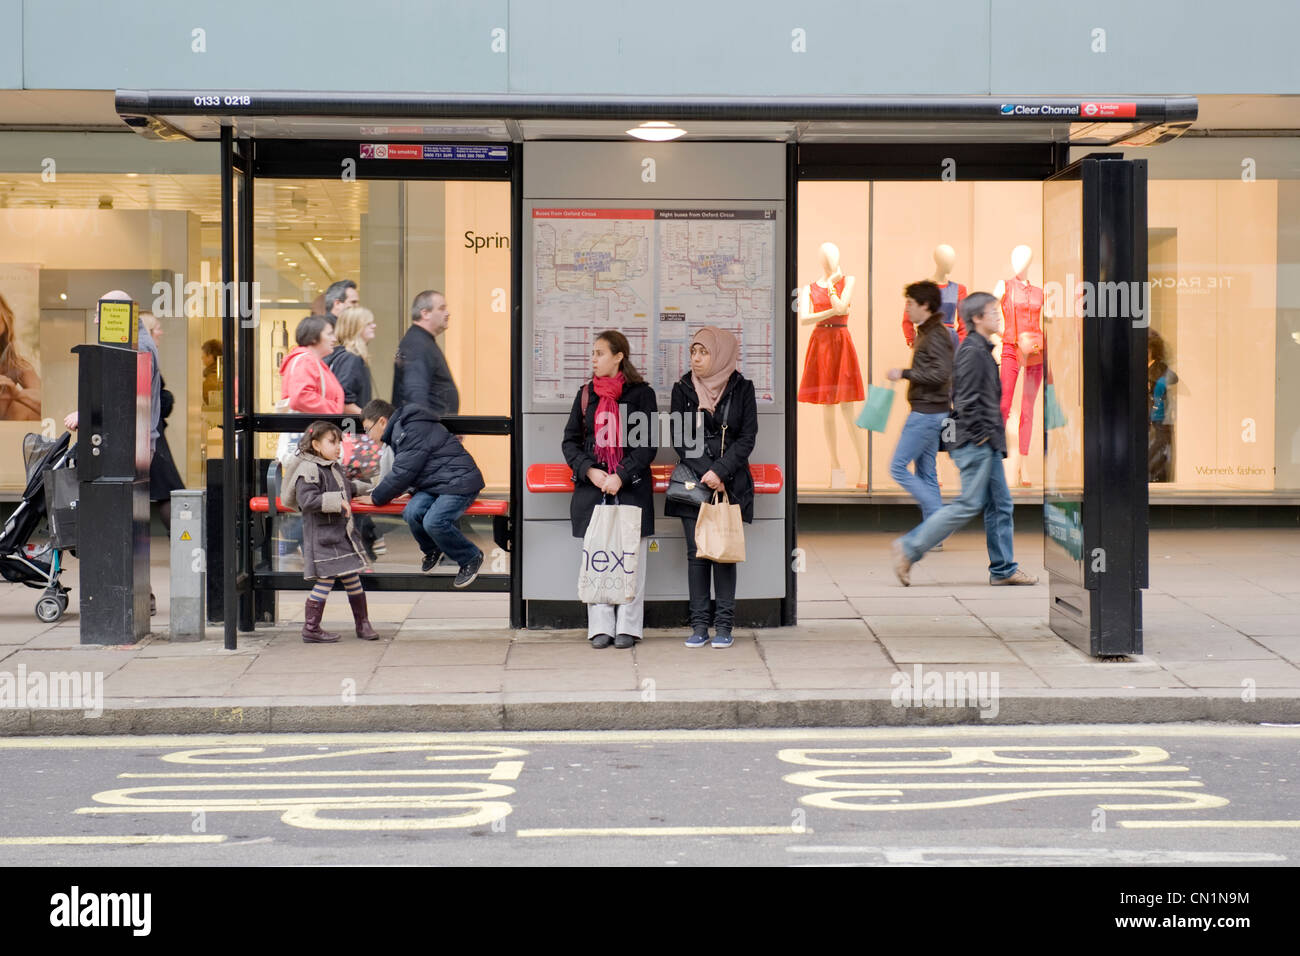 Oxford Street London West End two young ethnic girls ladies women females with children wait in bus stop shelter - Stock Image